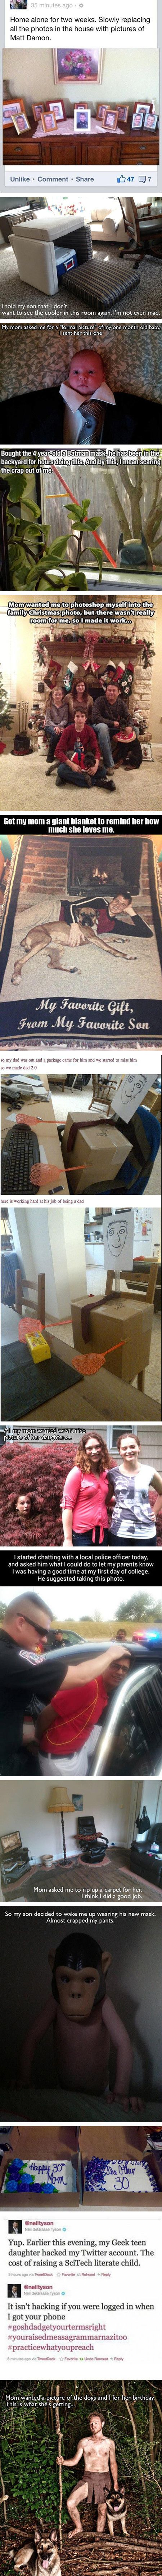 14 Funny Examples of Geeky Kids Thinking Outside the Box - TechEBlog